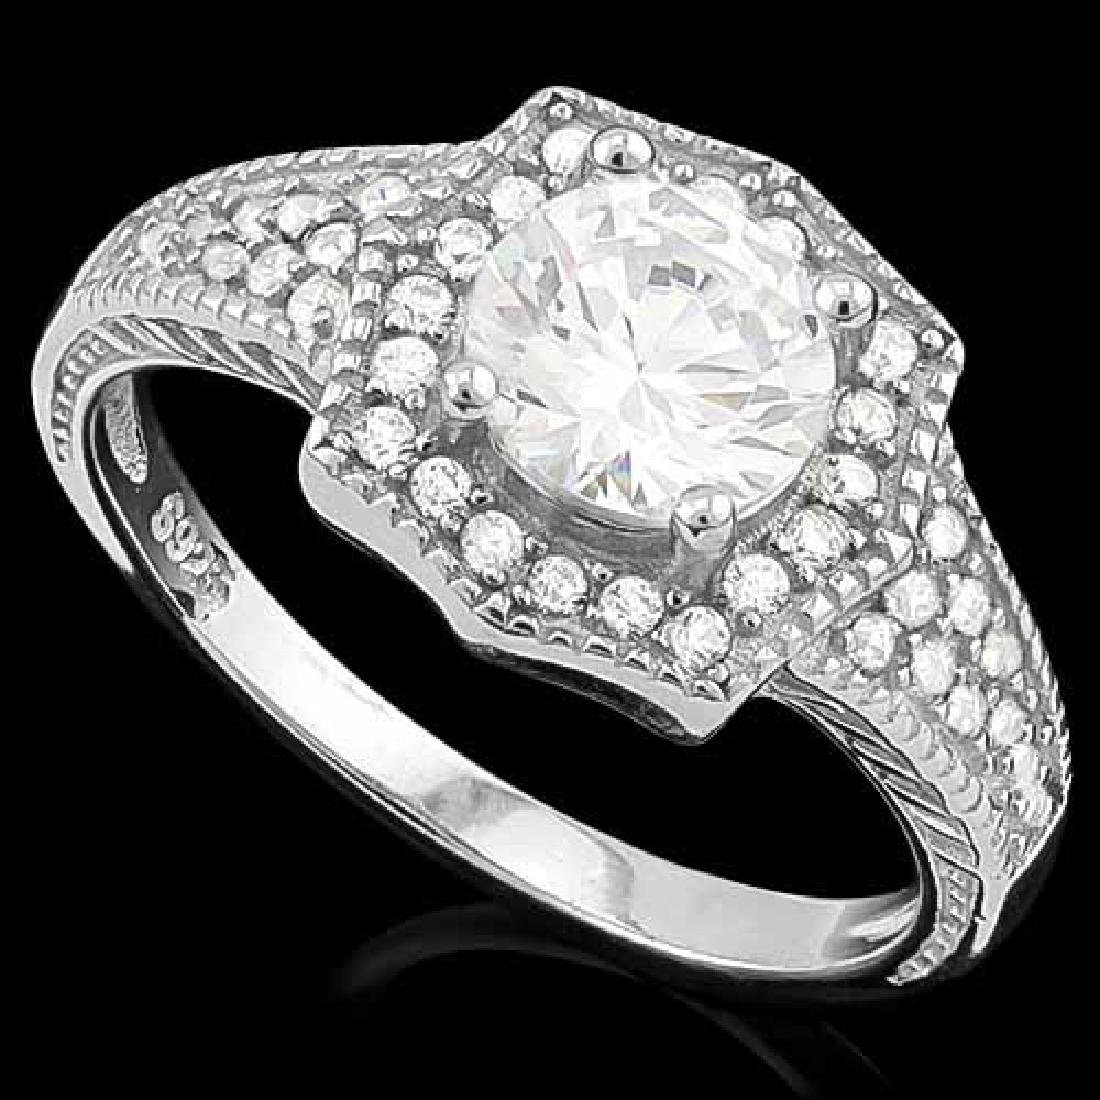 1 3/5 CARAT (41 PCS) FLAWLESS CREATED DIAMOND 925 STERL